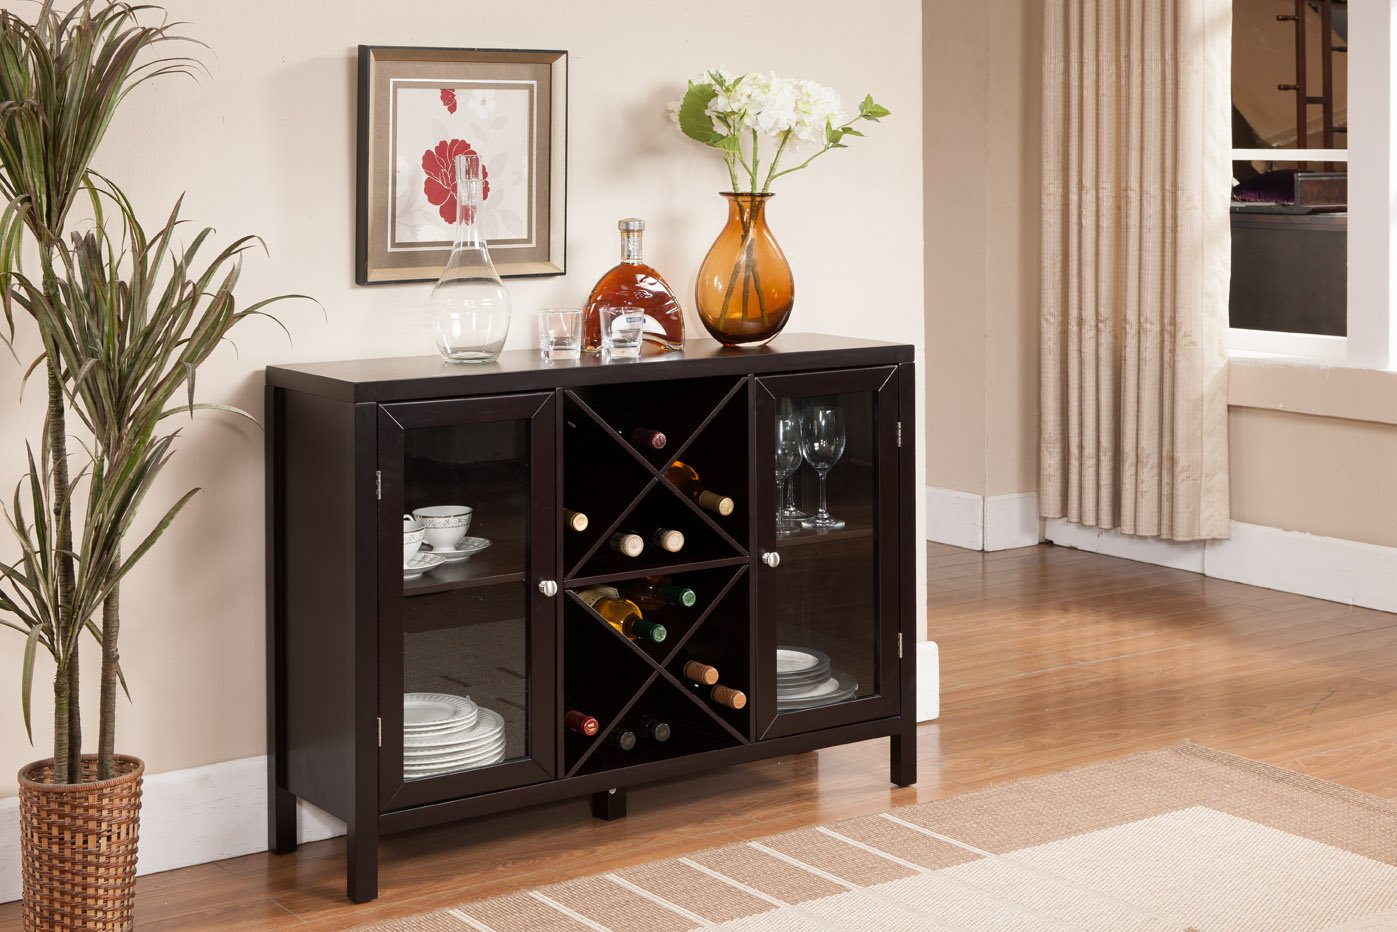 Kings Brand Furniture Wood Wine Rack Console Sideboard Table with Storage, Espresso by Kings Brand Furniture